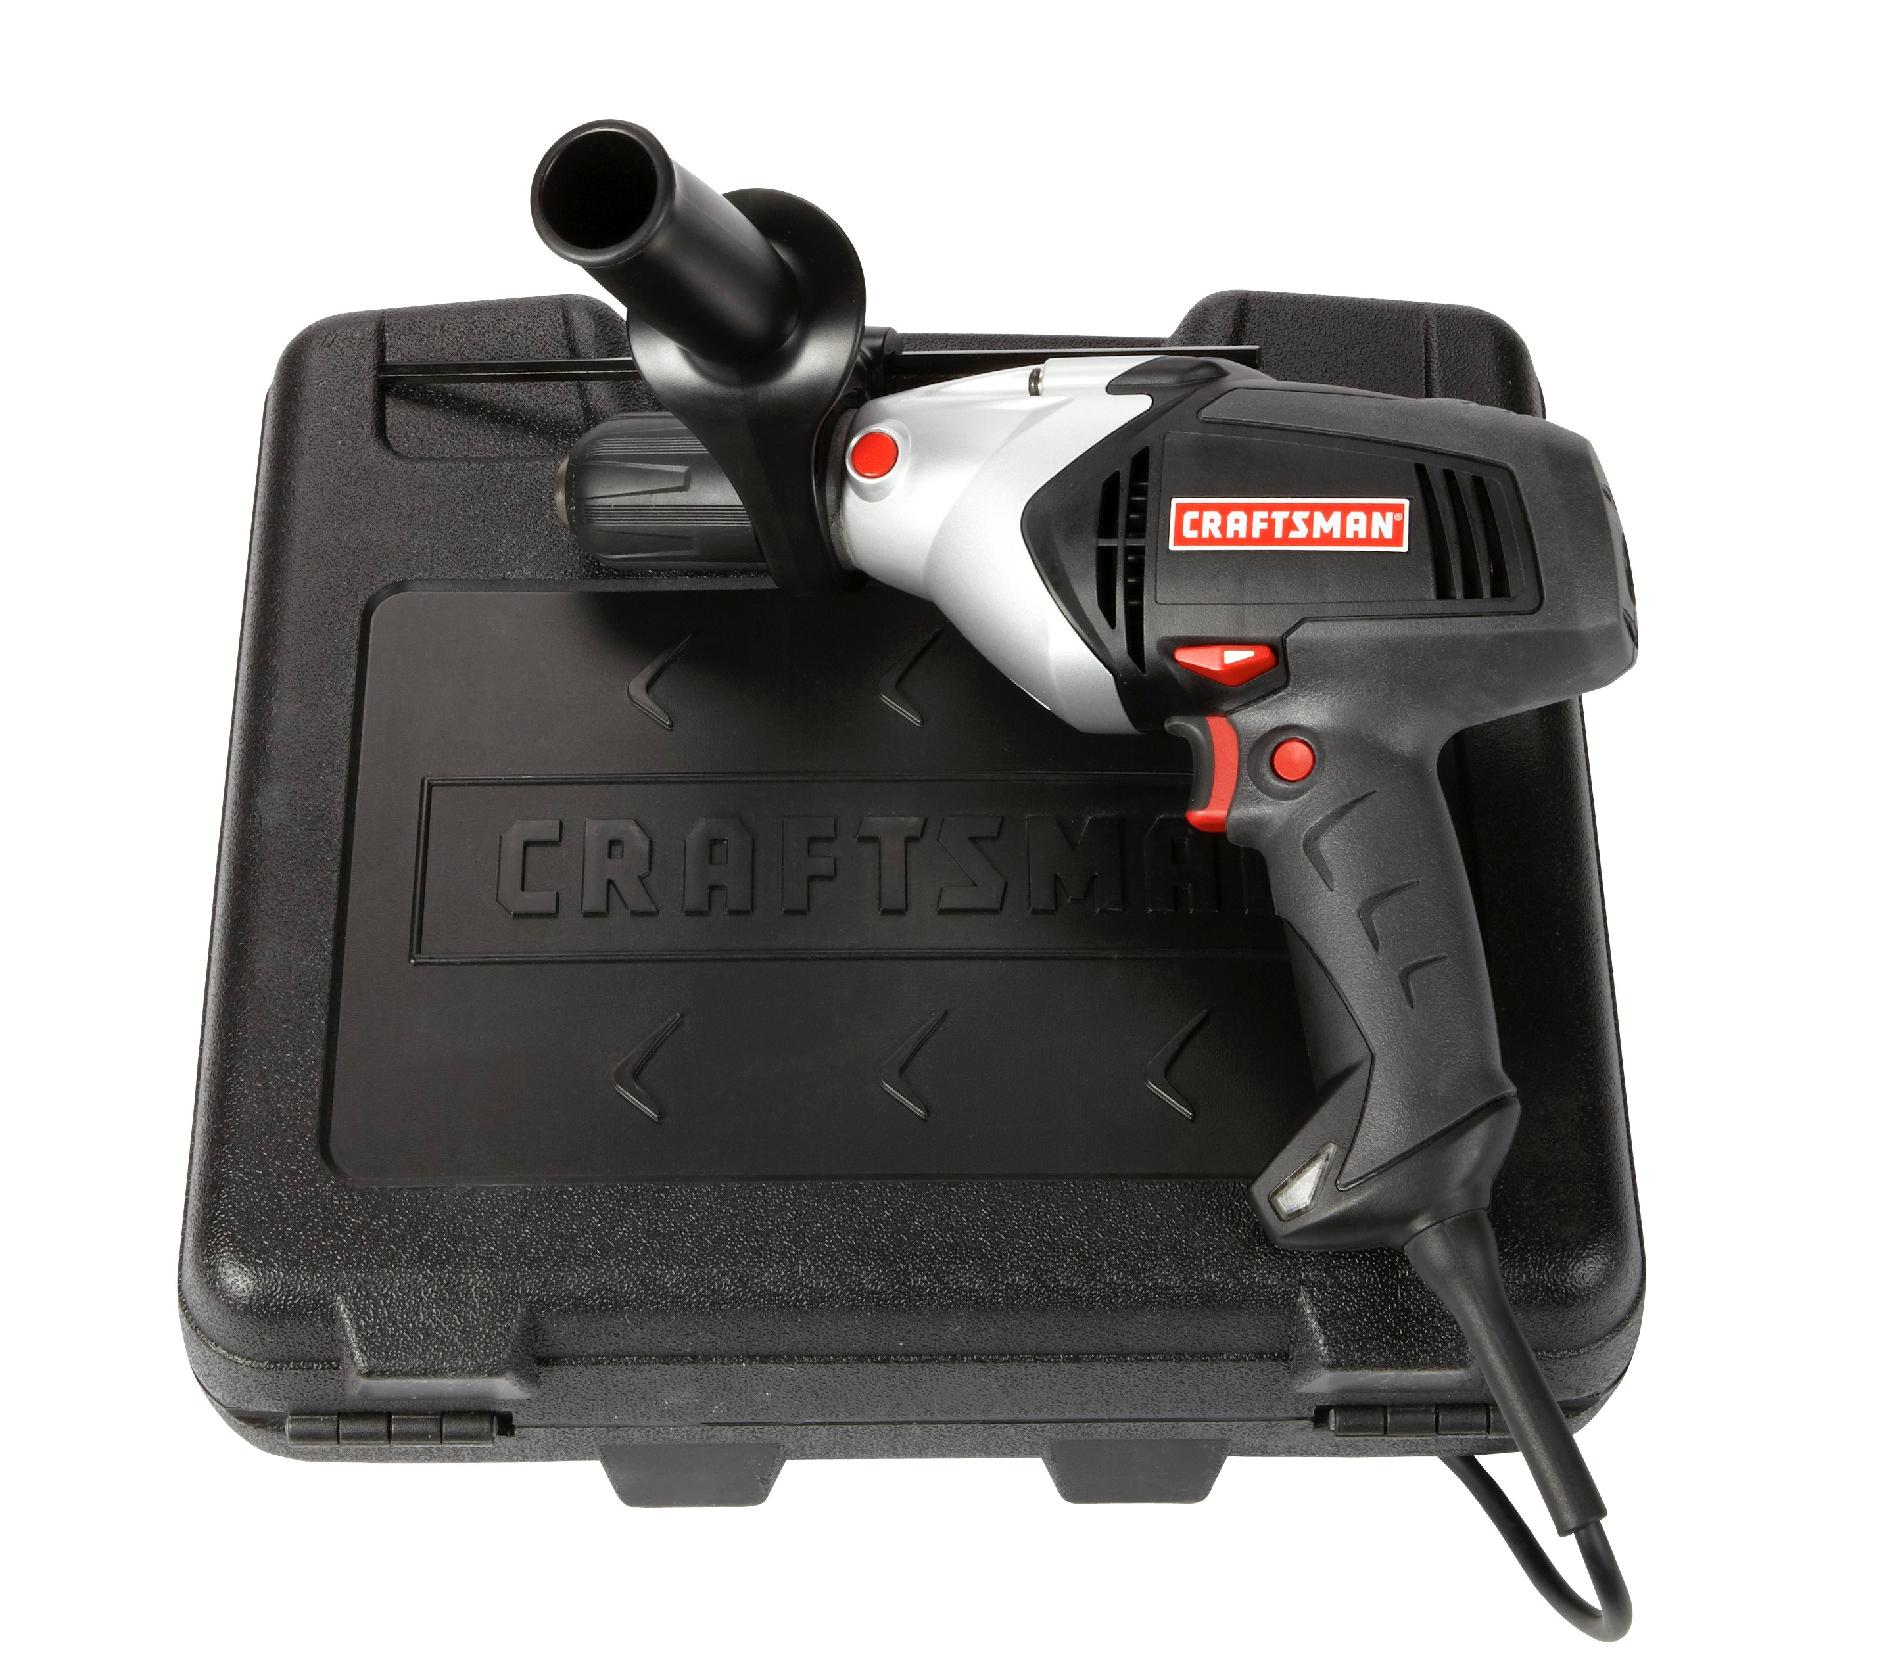 Craftsman 1/2 in. Corded Drill